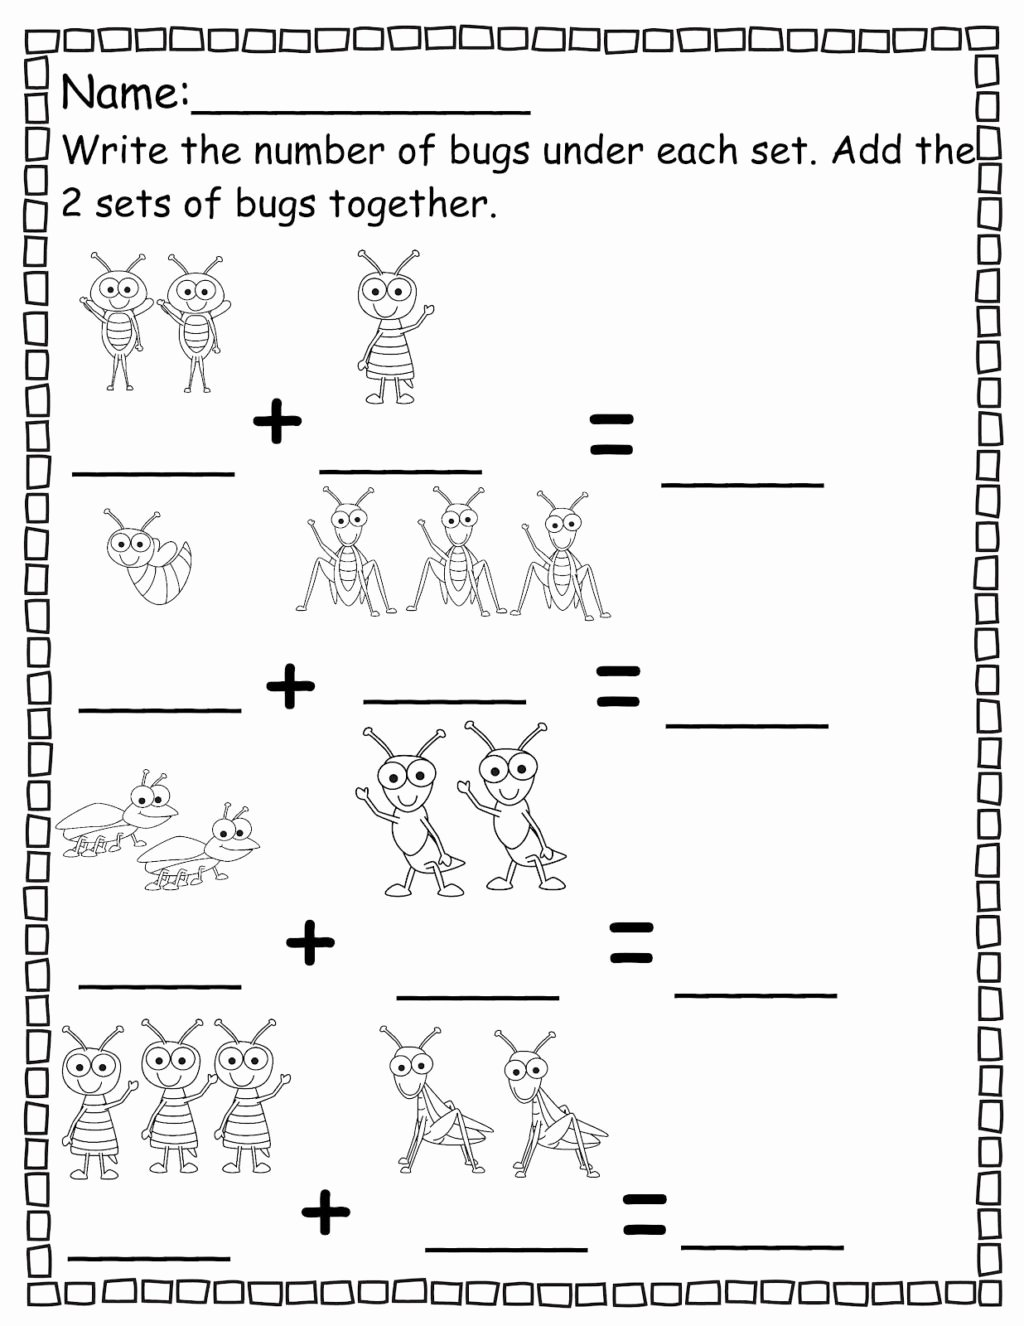 Counting Bugs Worksheets for Preschoolers Lovely Worksheet Fabulous Math Worksheets for Pre K Image